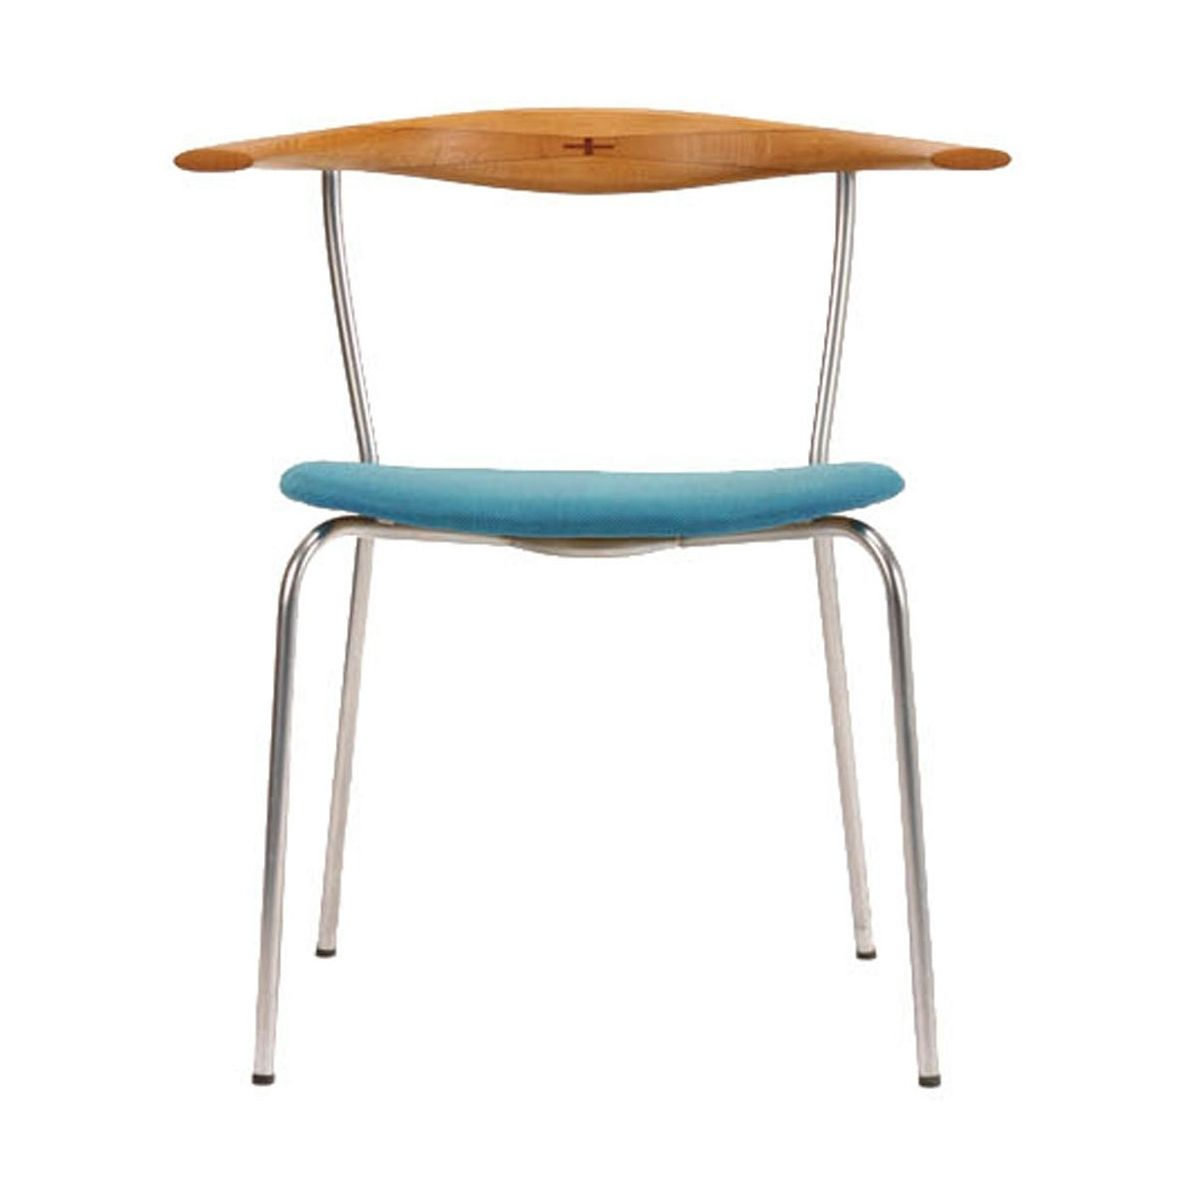 Hans J. Wegner chair | Furniture finds of the day